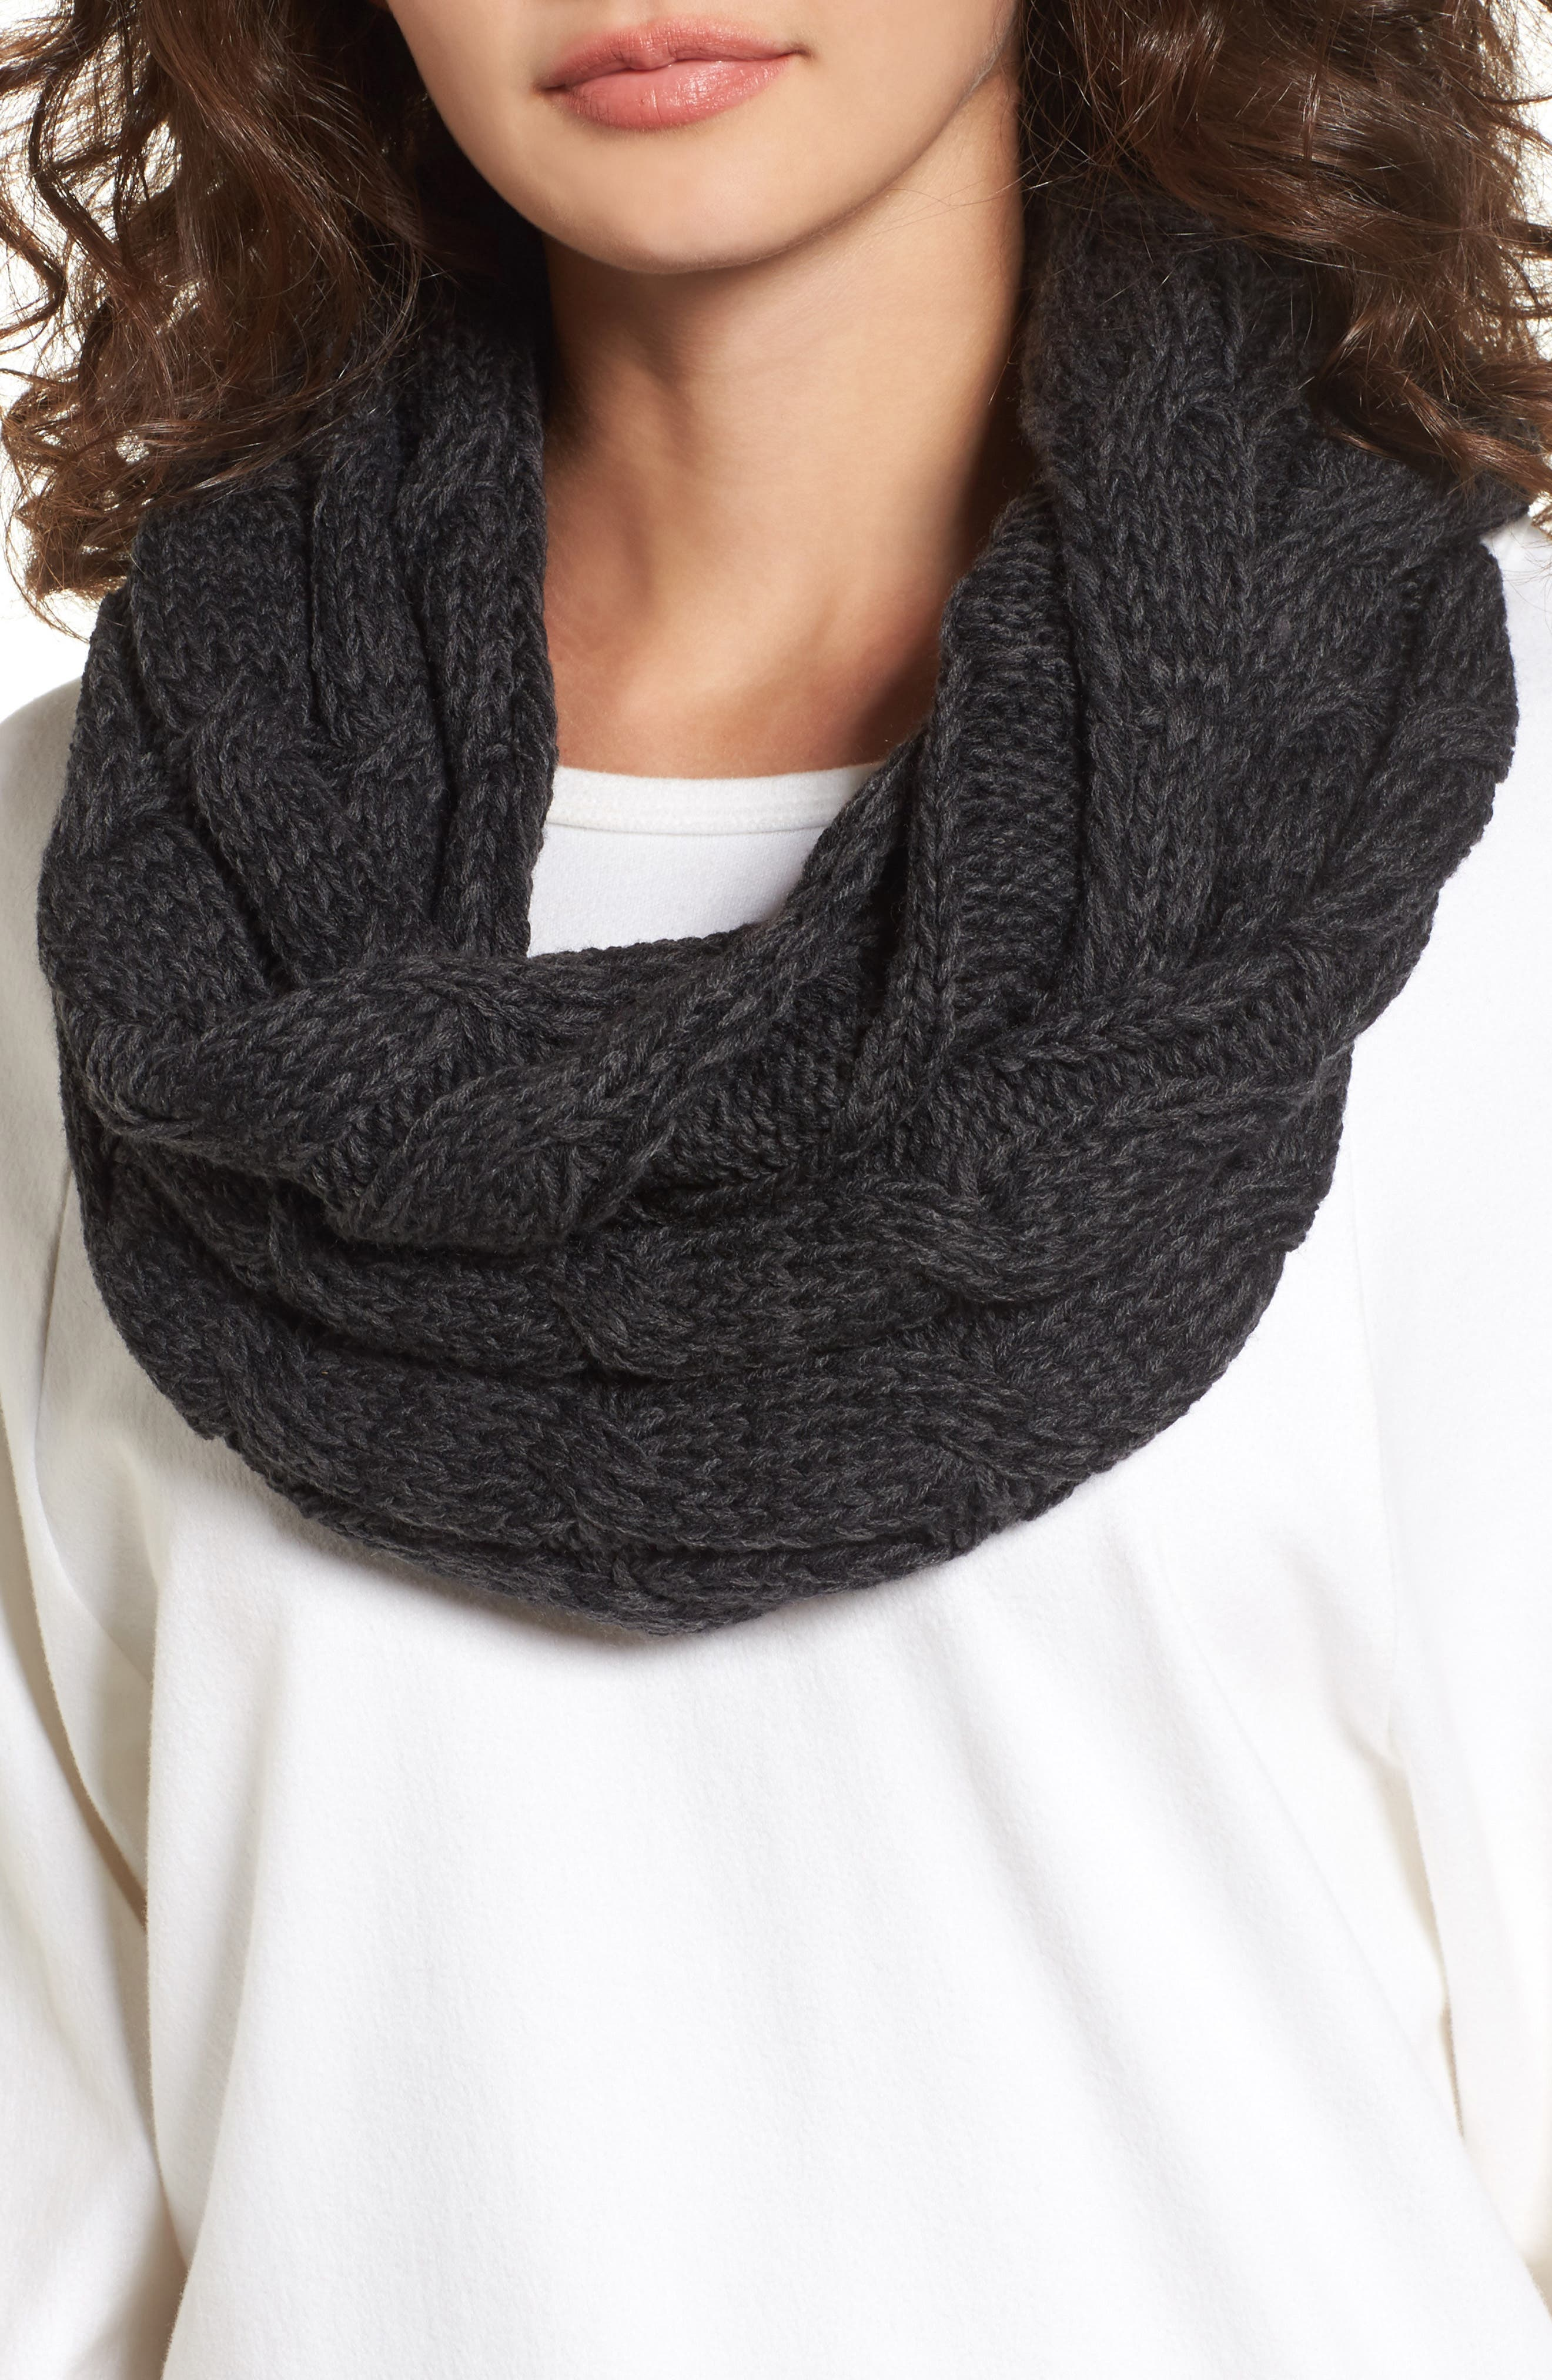 Knit Infinity Scarf,                             Main thumbnail 1, color,                             001